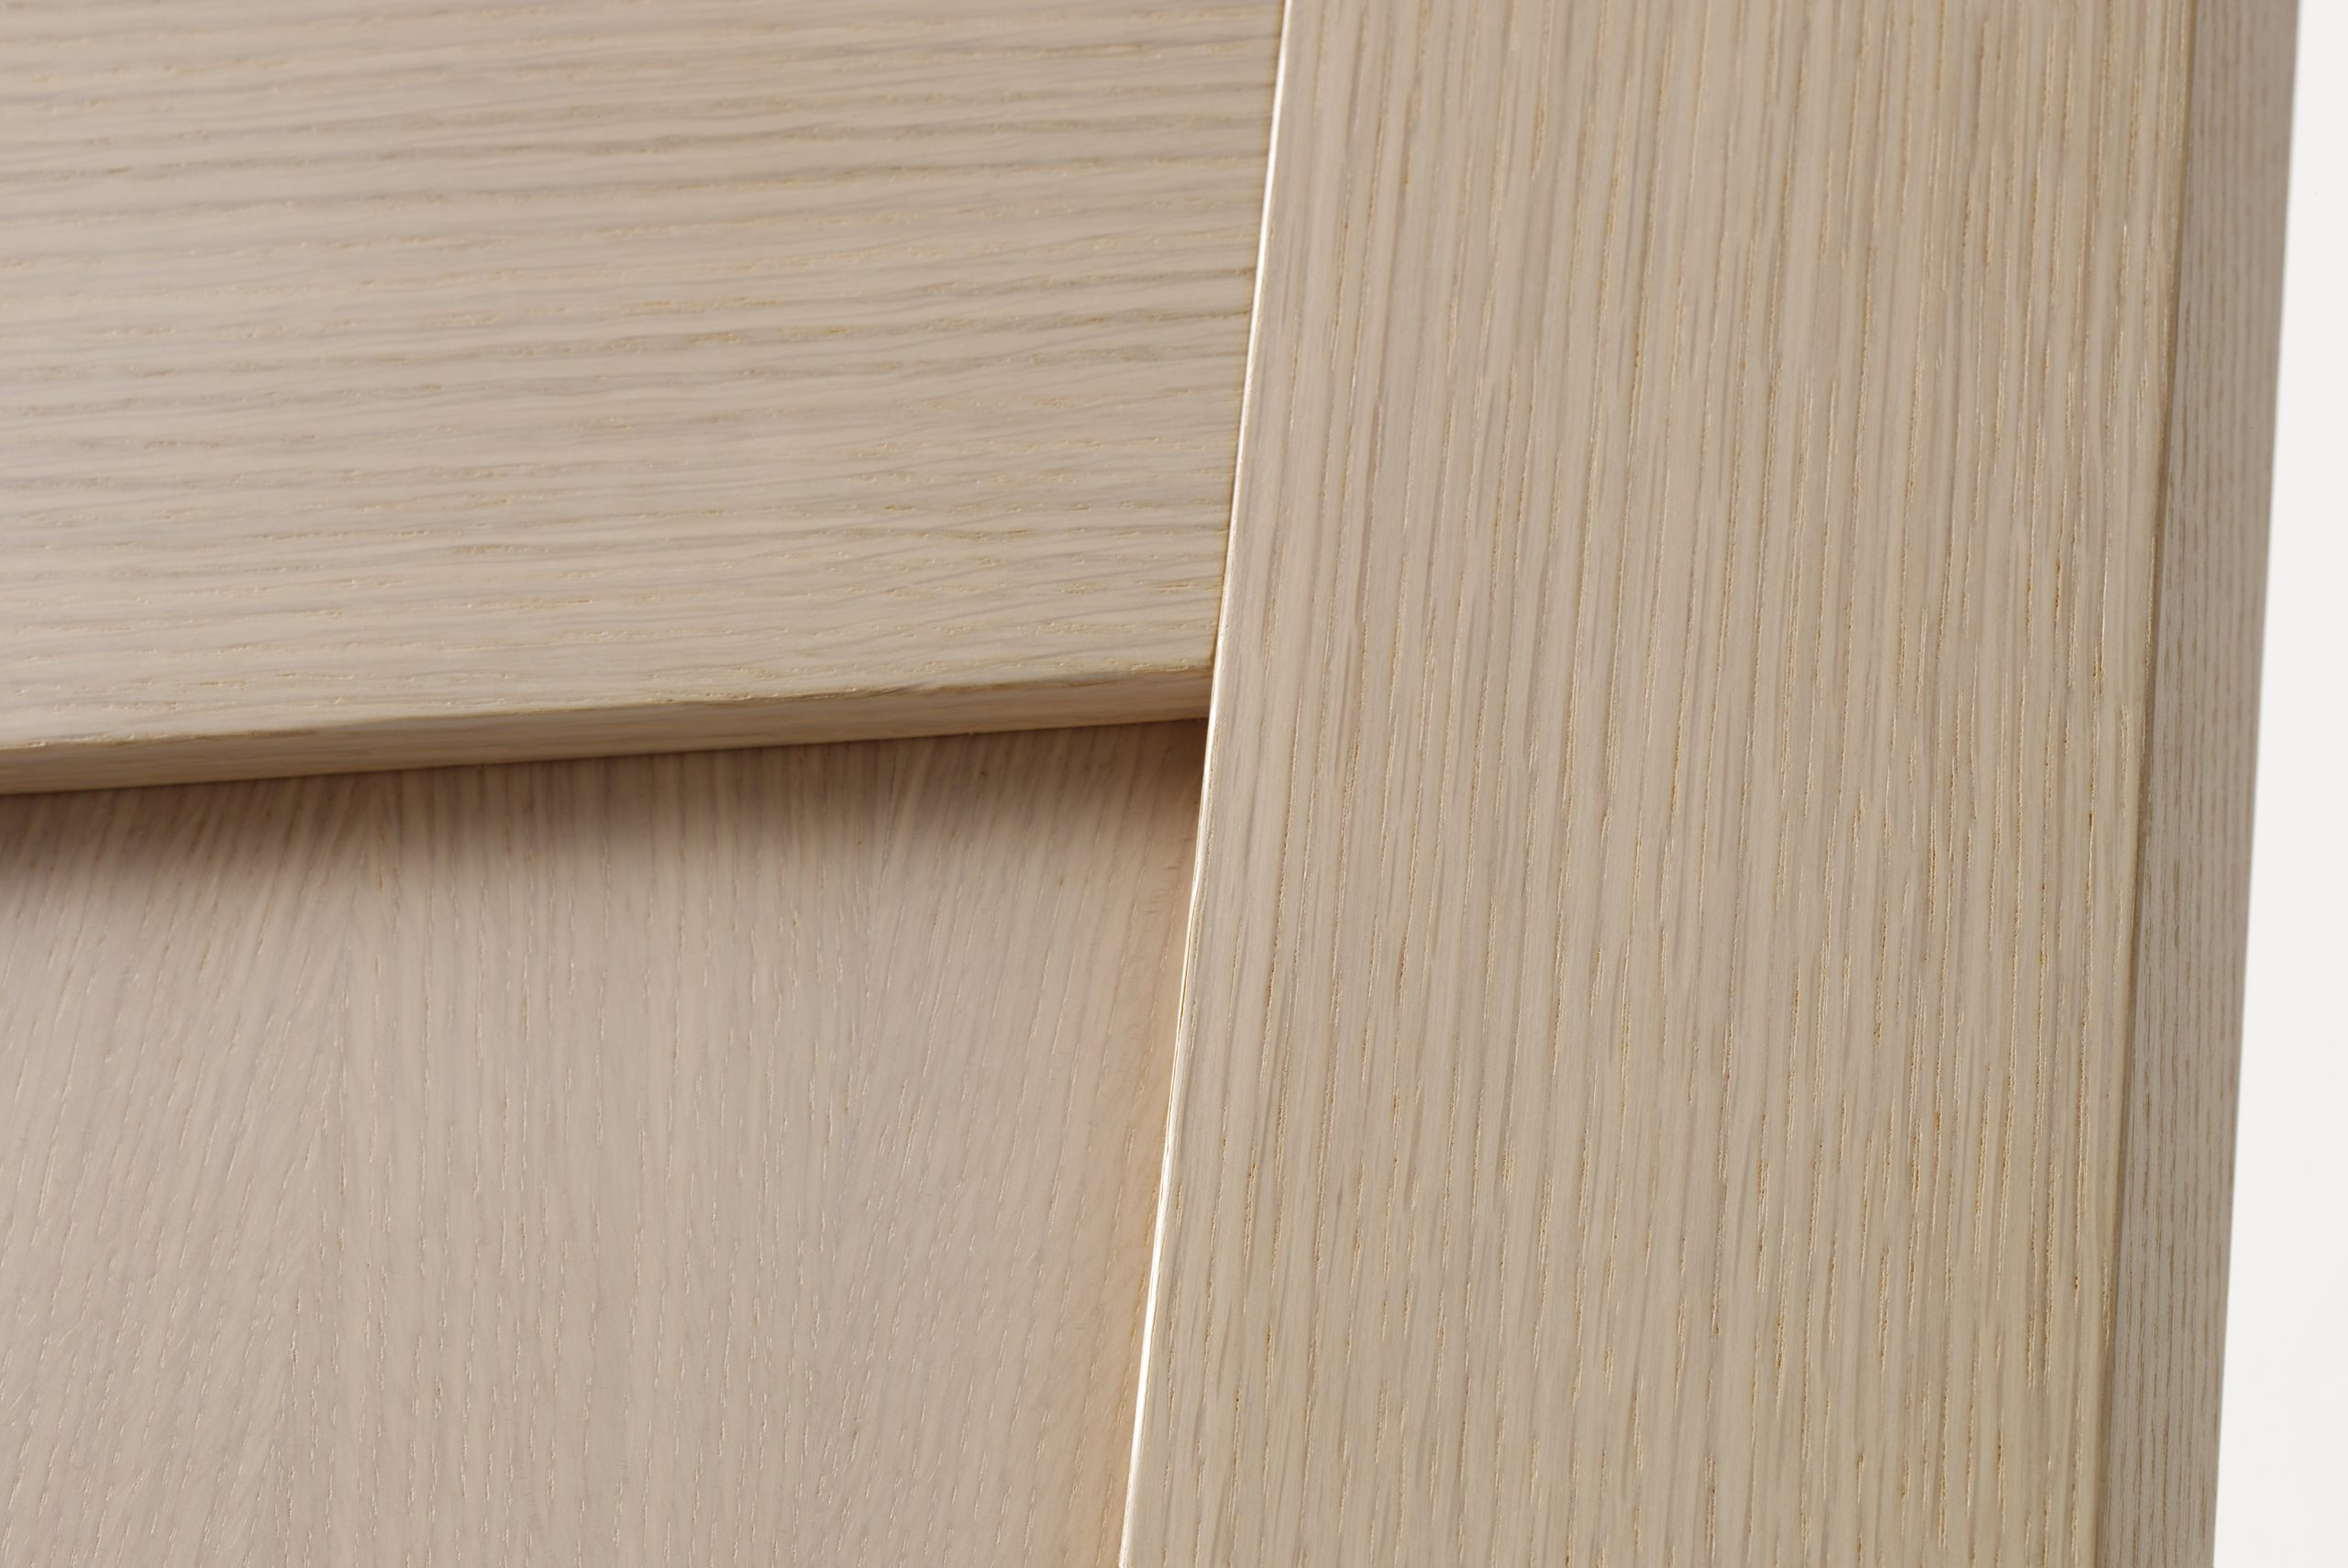 Unique-white-oak-close-3